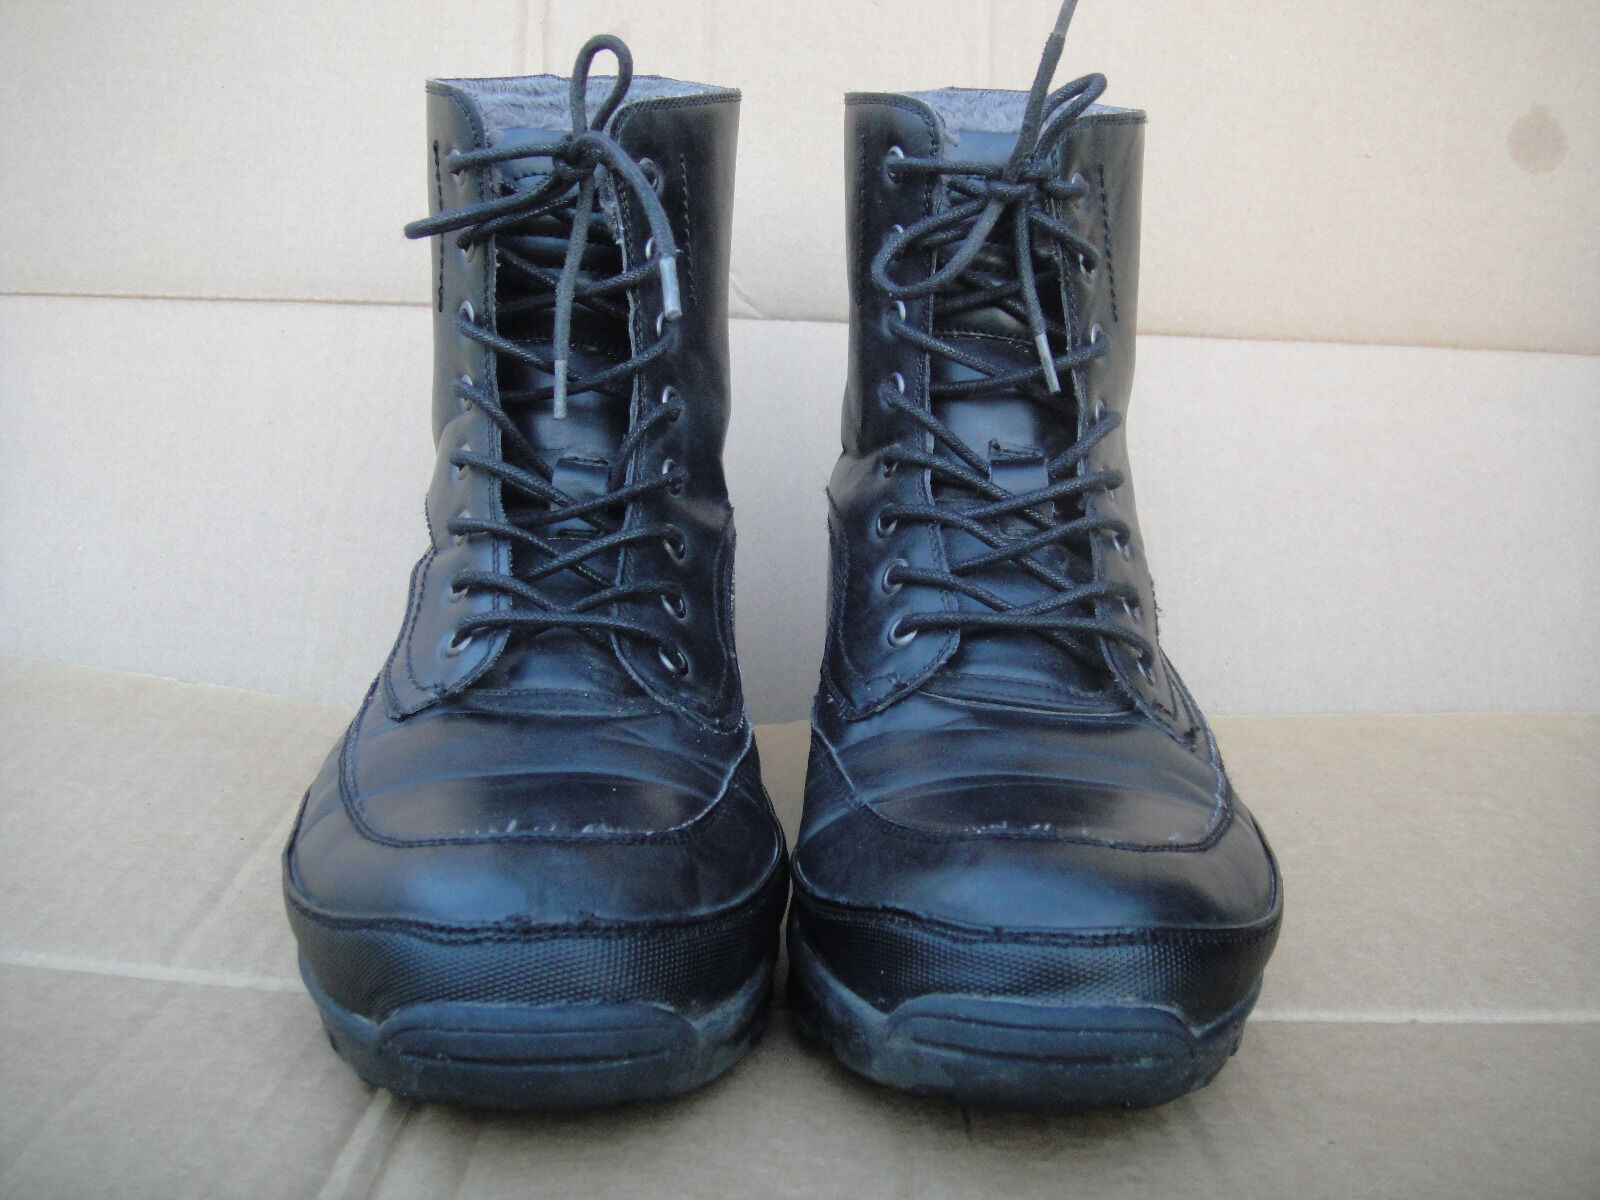 Kenneth Cole Unlisted  Imagi-nation  Men's Ankle Boots Size 11M